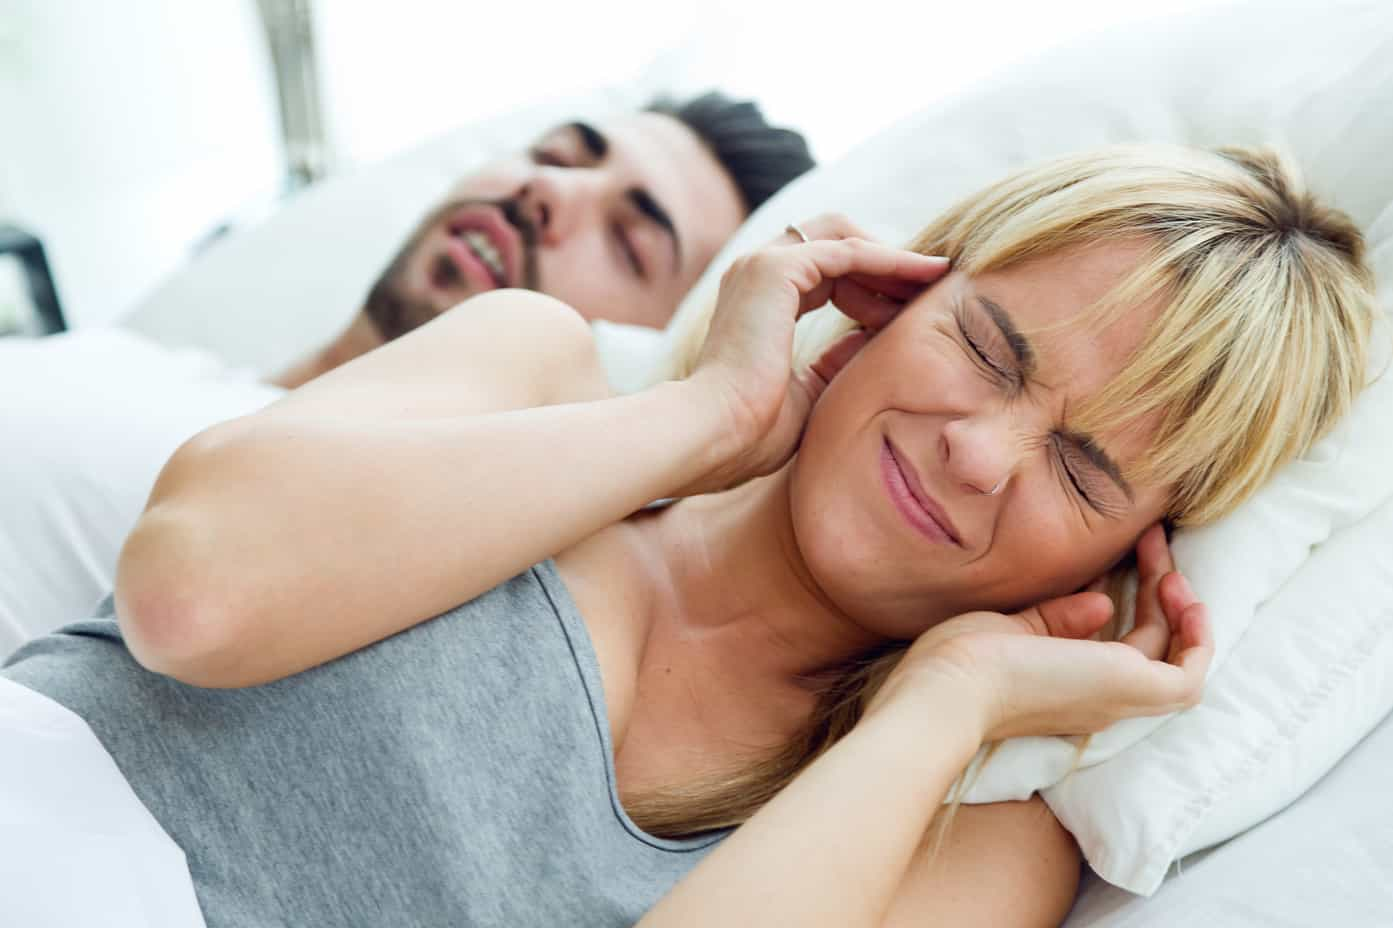 Young woman who can not sleep because her husband snores